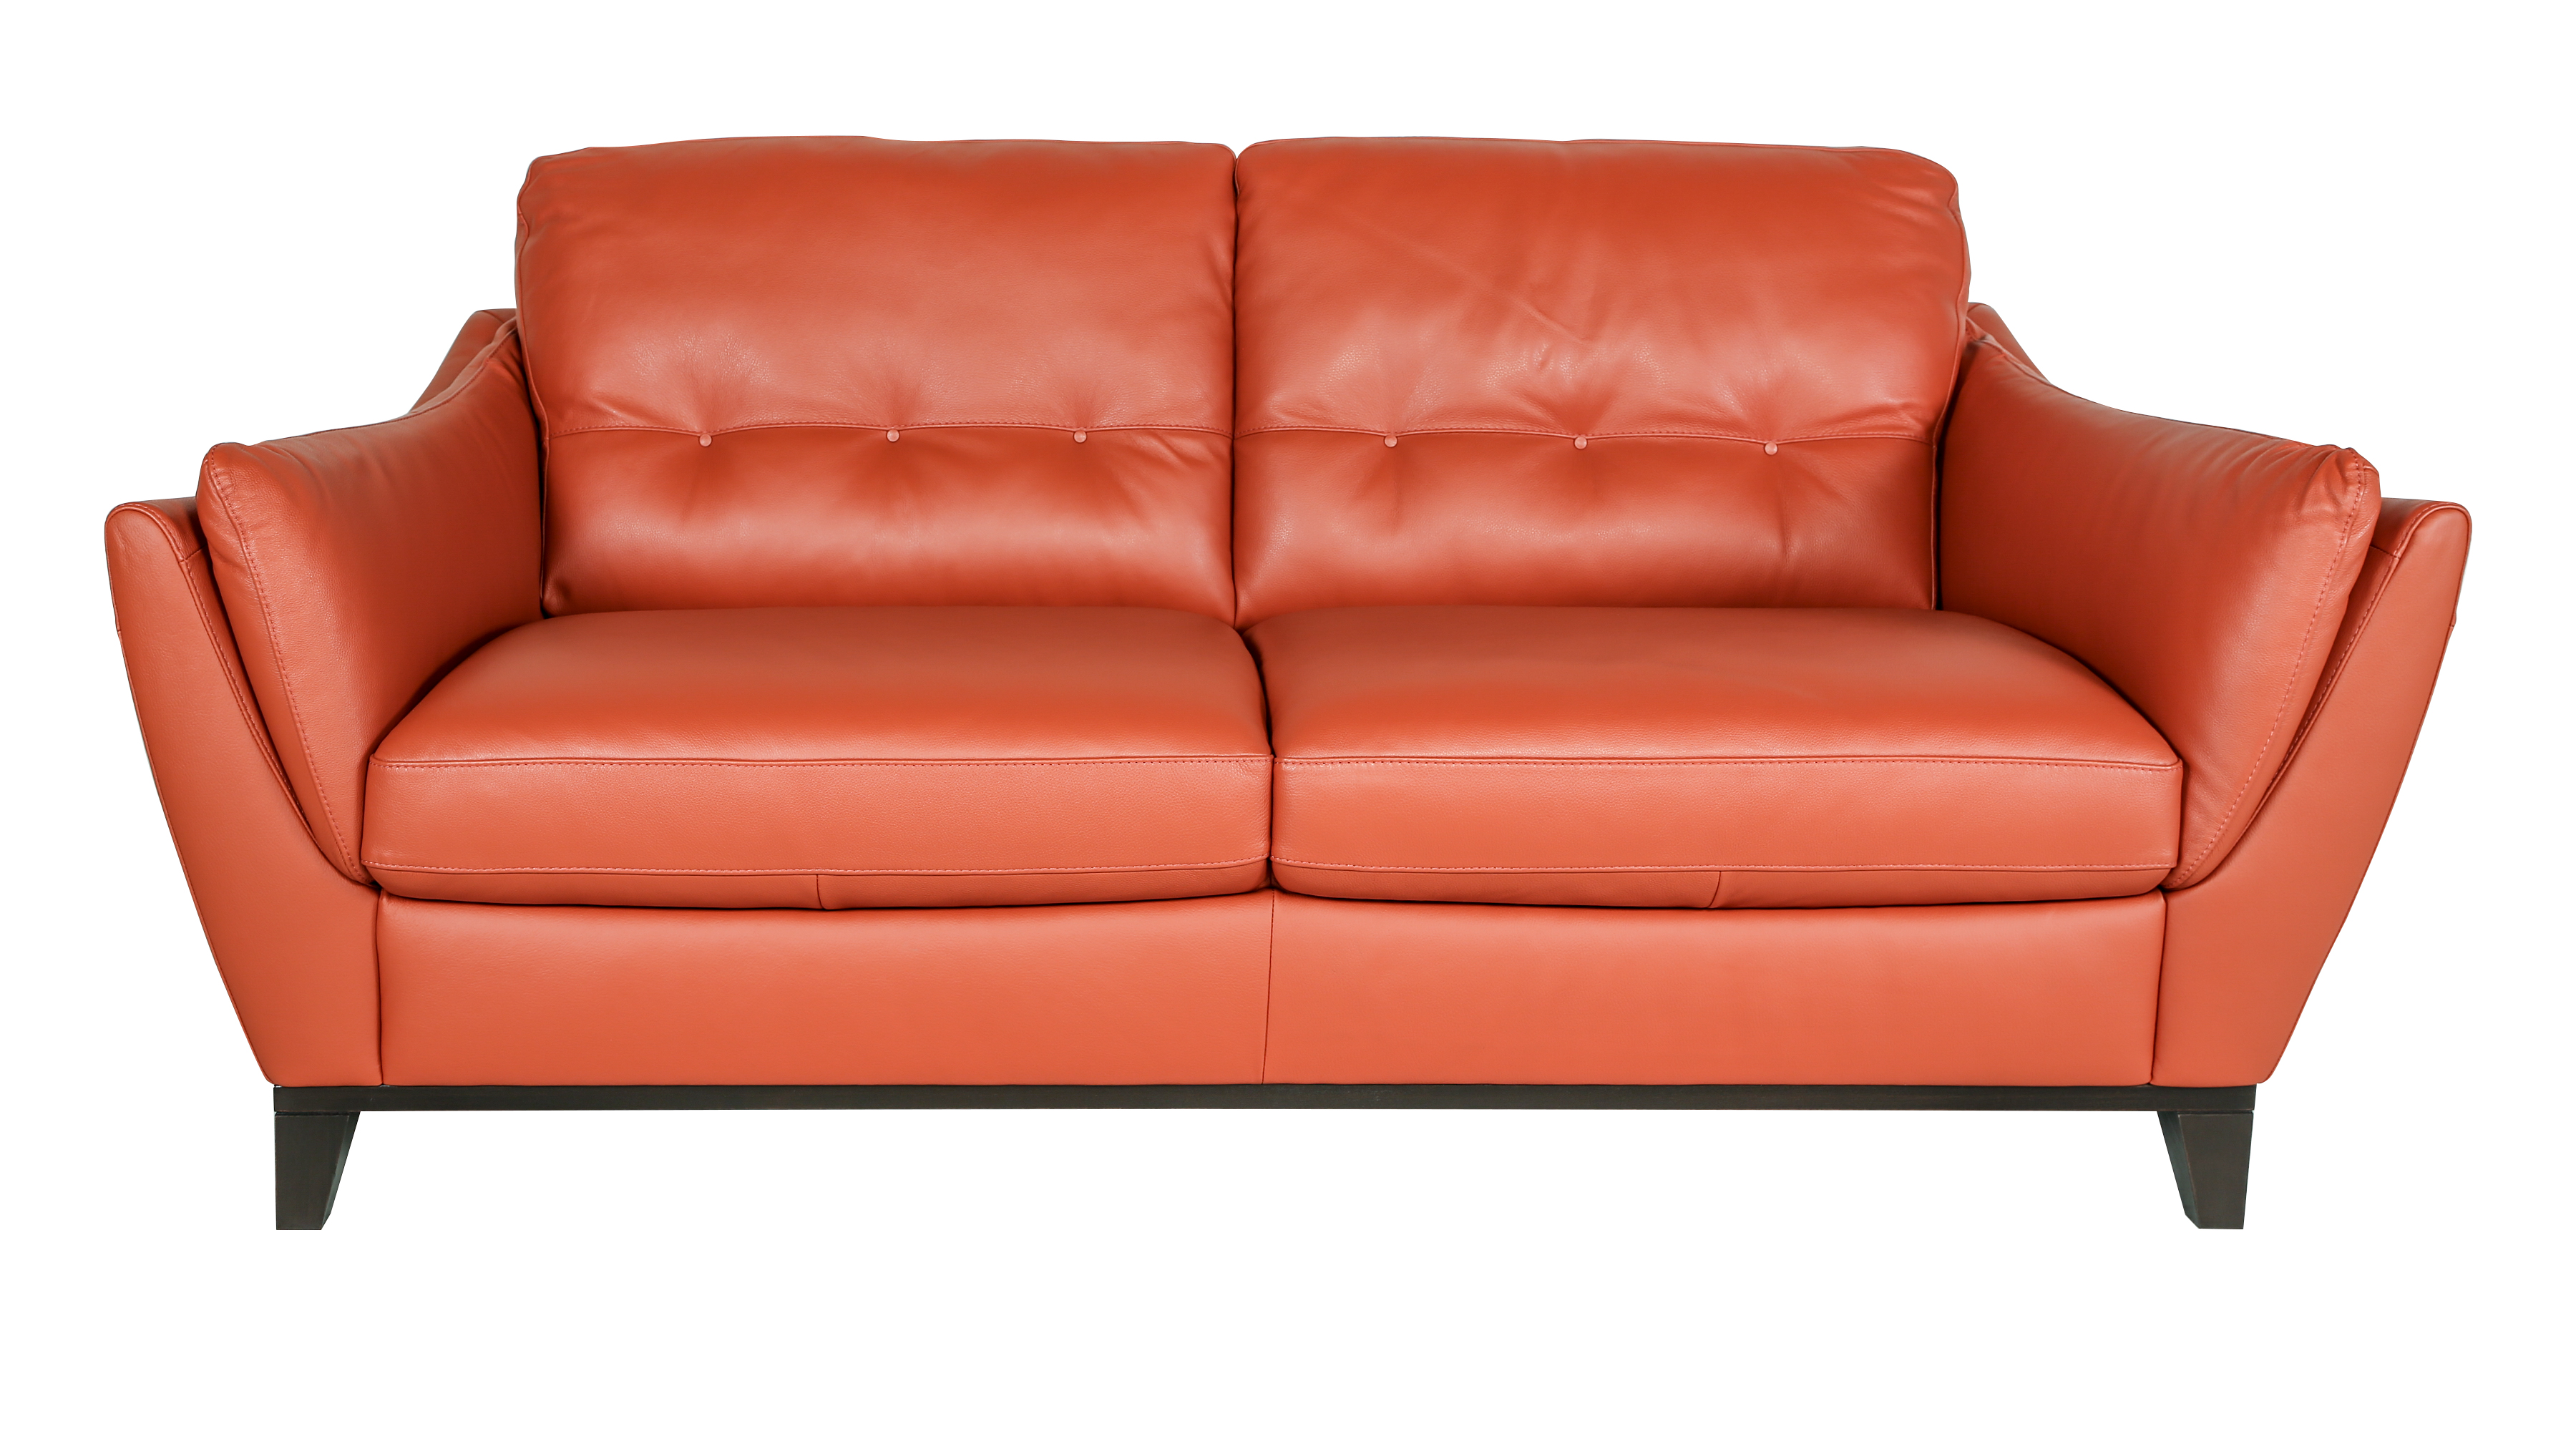 Crate and Barrel Couch | Crate & Barrel Lounge Sofa | Crate and Barrel Discontinued Furniture